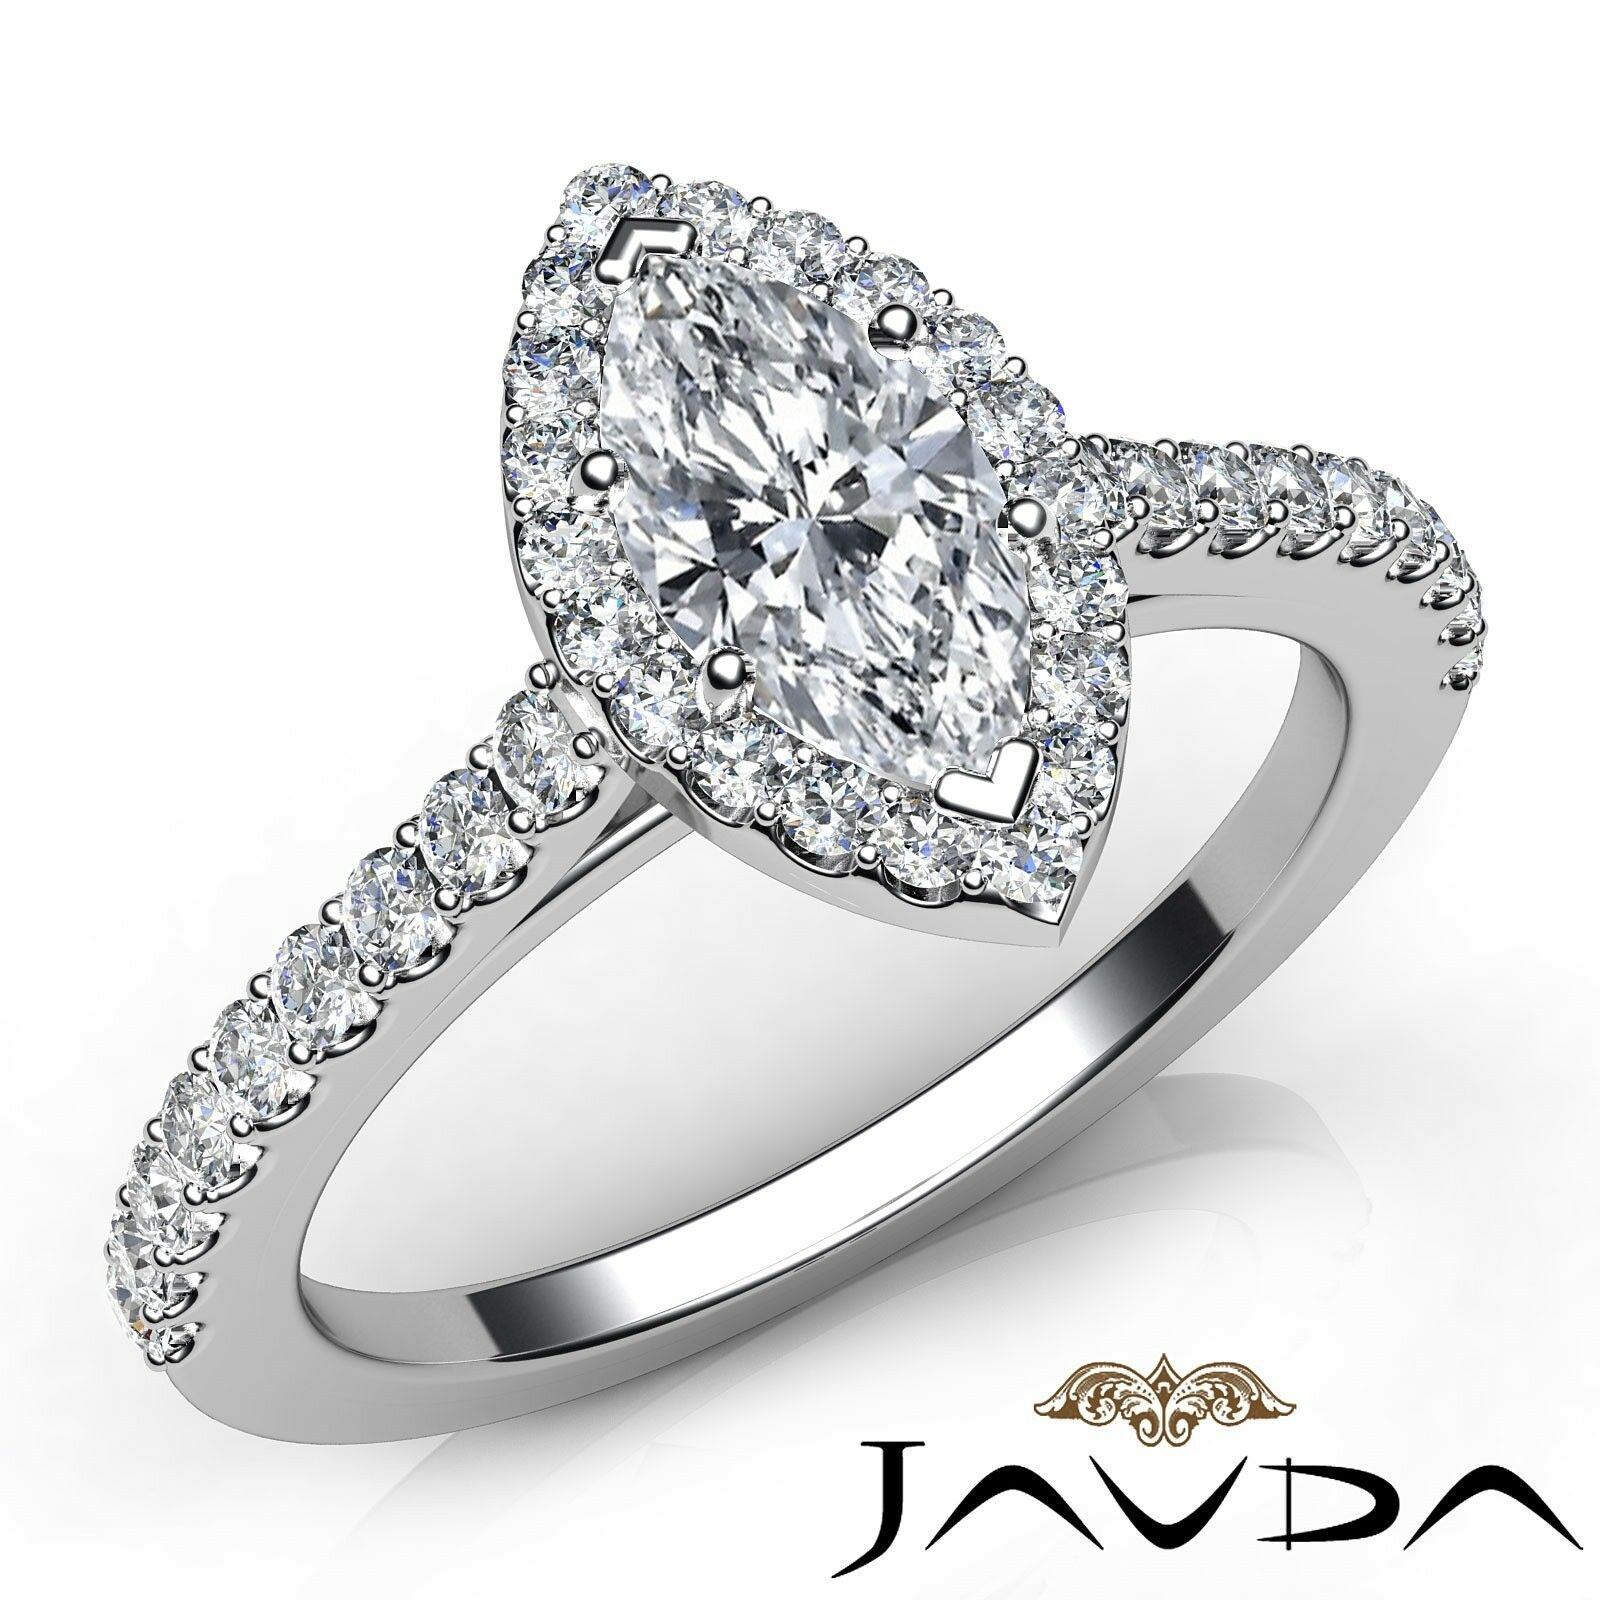 1.03ctw Halo Pave Side-Stone Marquise Diamond Engagement Ring GIA F-SI1 W Gold